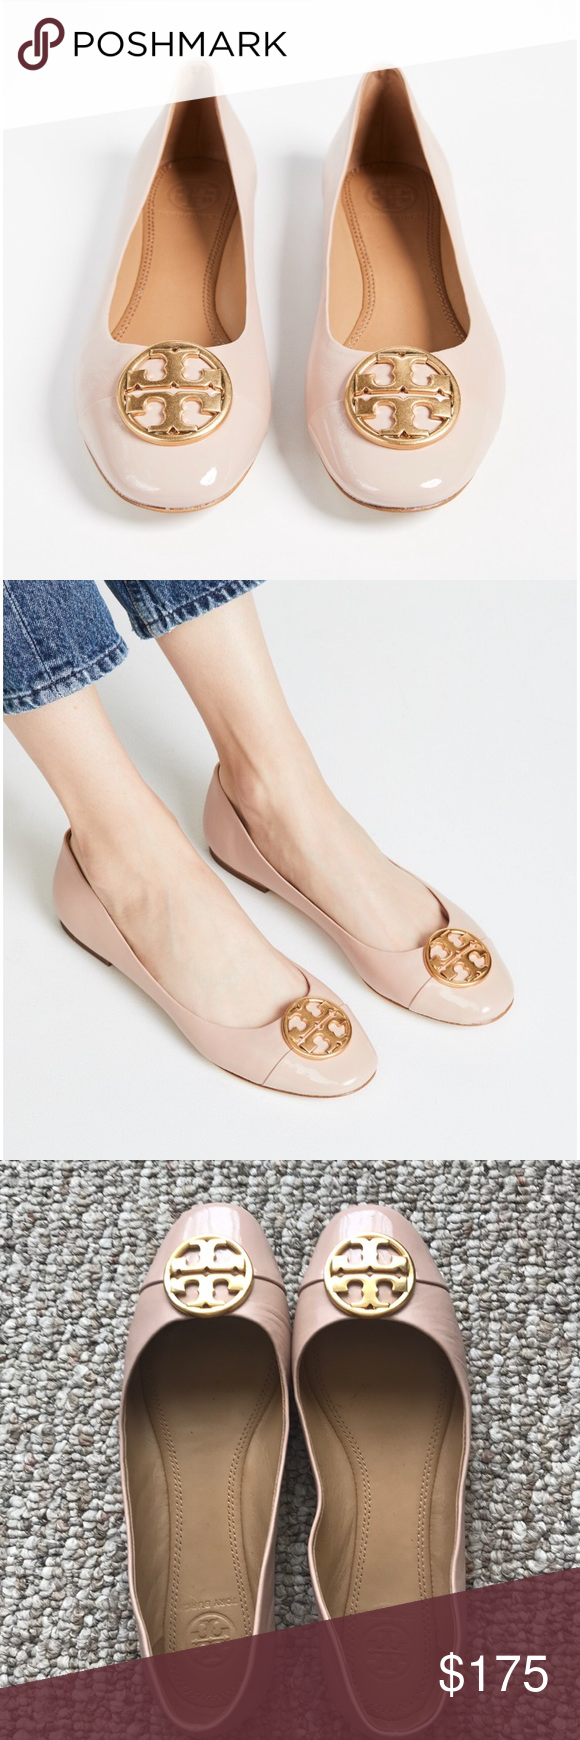 aa28c7d30bb8c Tory Burch Chelsea Cap Tow Ballet Flats Worn twice. Leather sole. Goan Sand  (